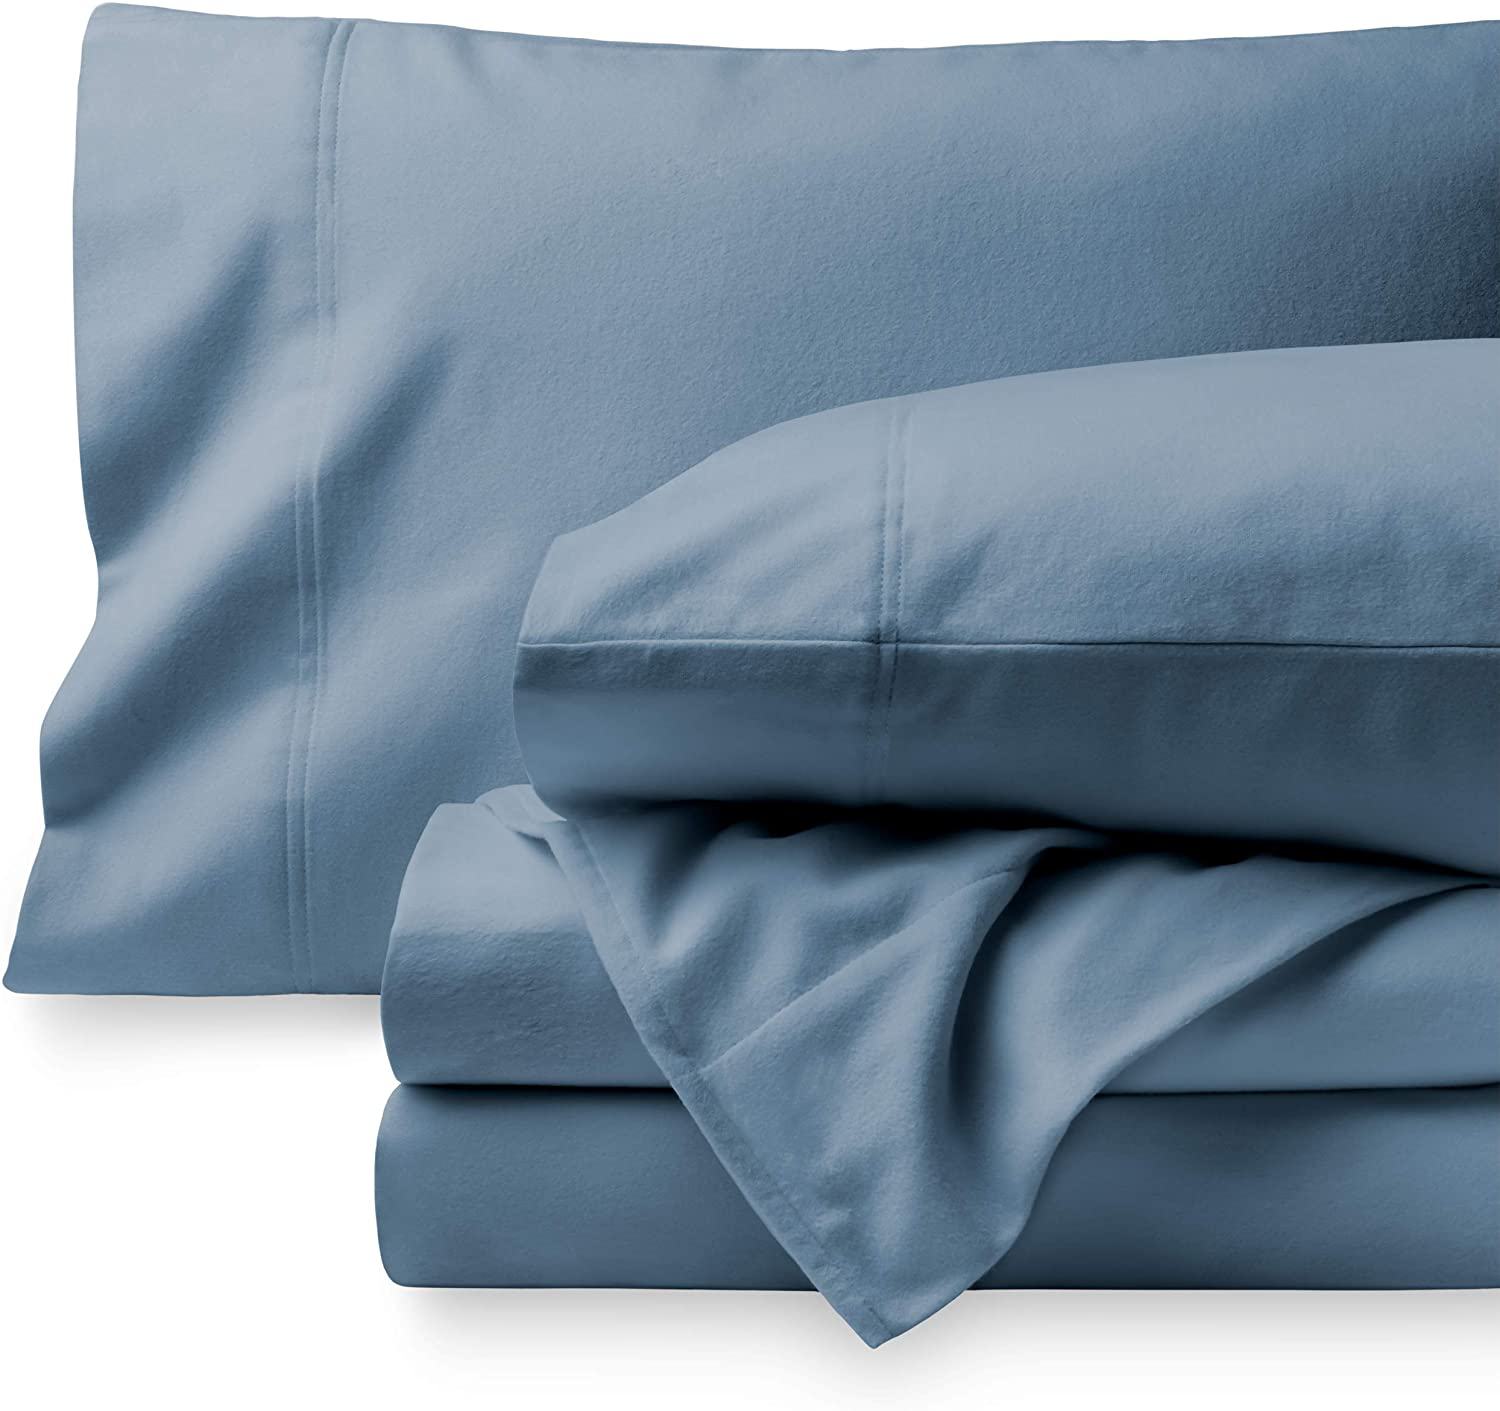 Bare Home Flannel Sheet Set 100% Cotton, Velvety Soft Heavyweight - Double Brushed Flannel - Deep Pocket (Full, Coronet Blue)